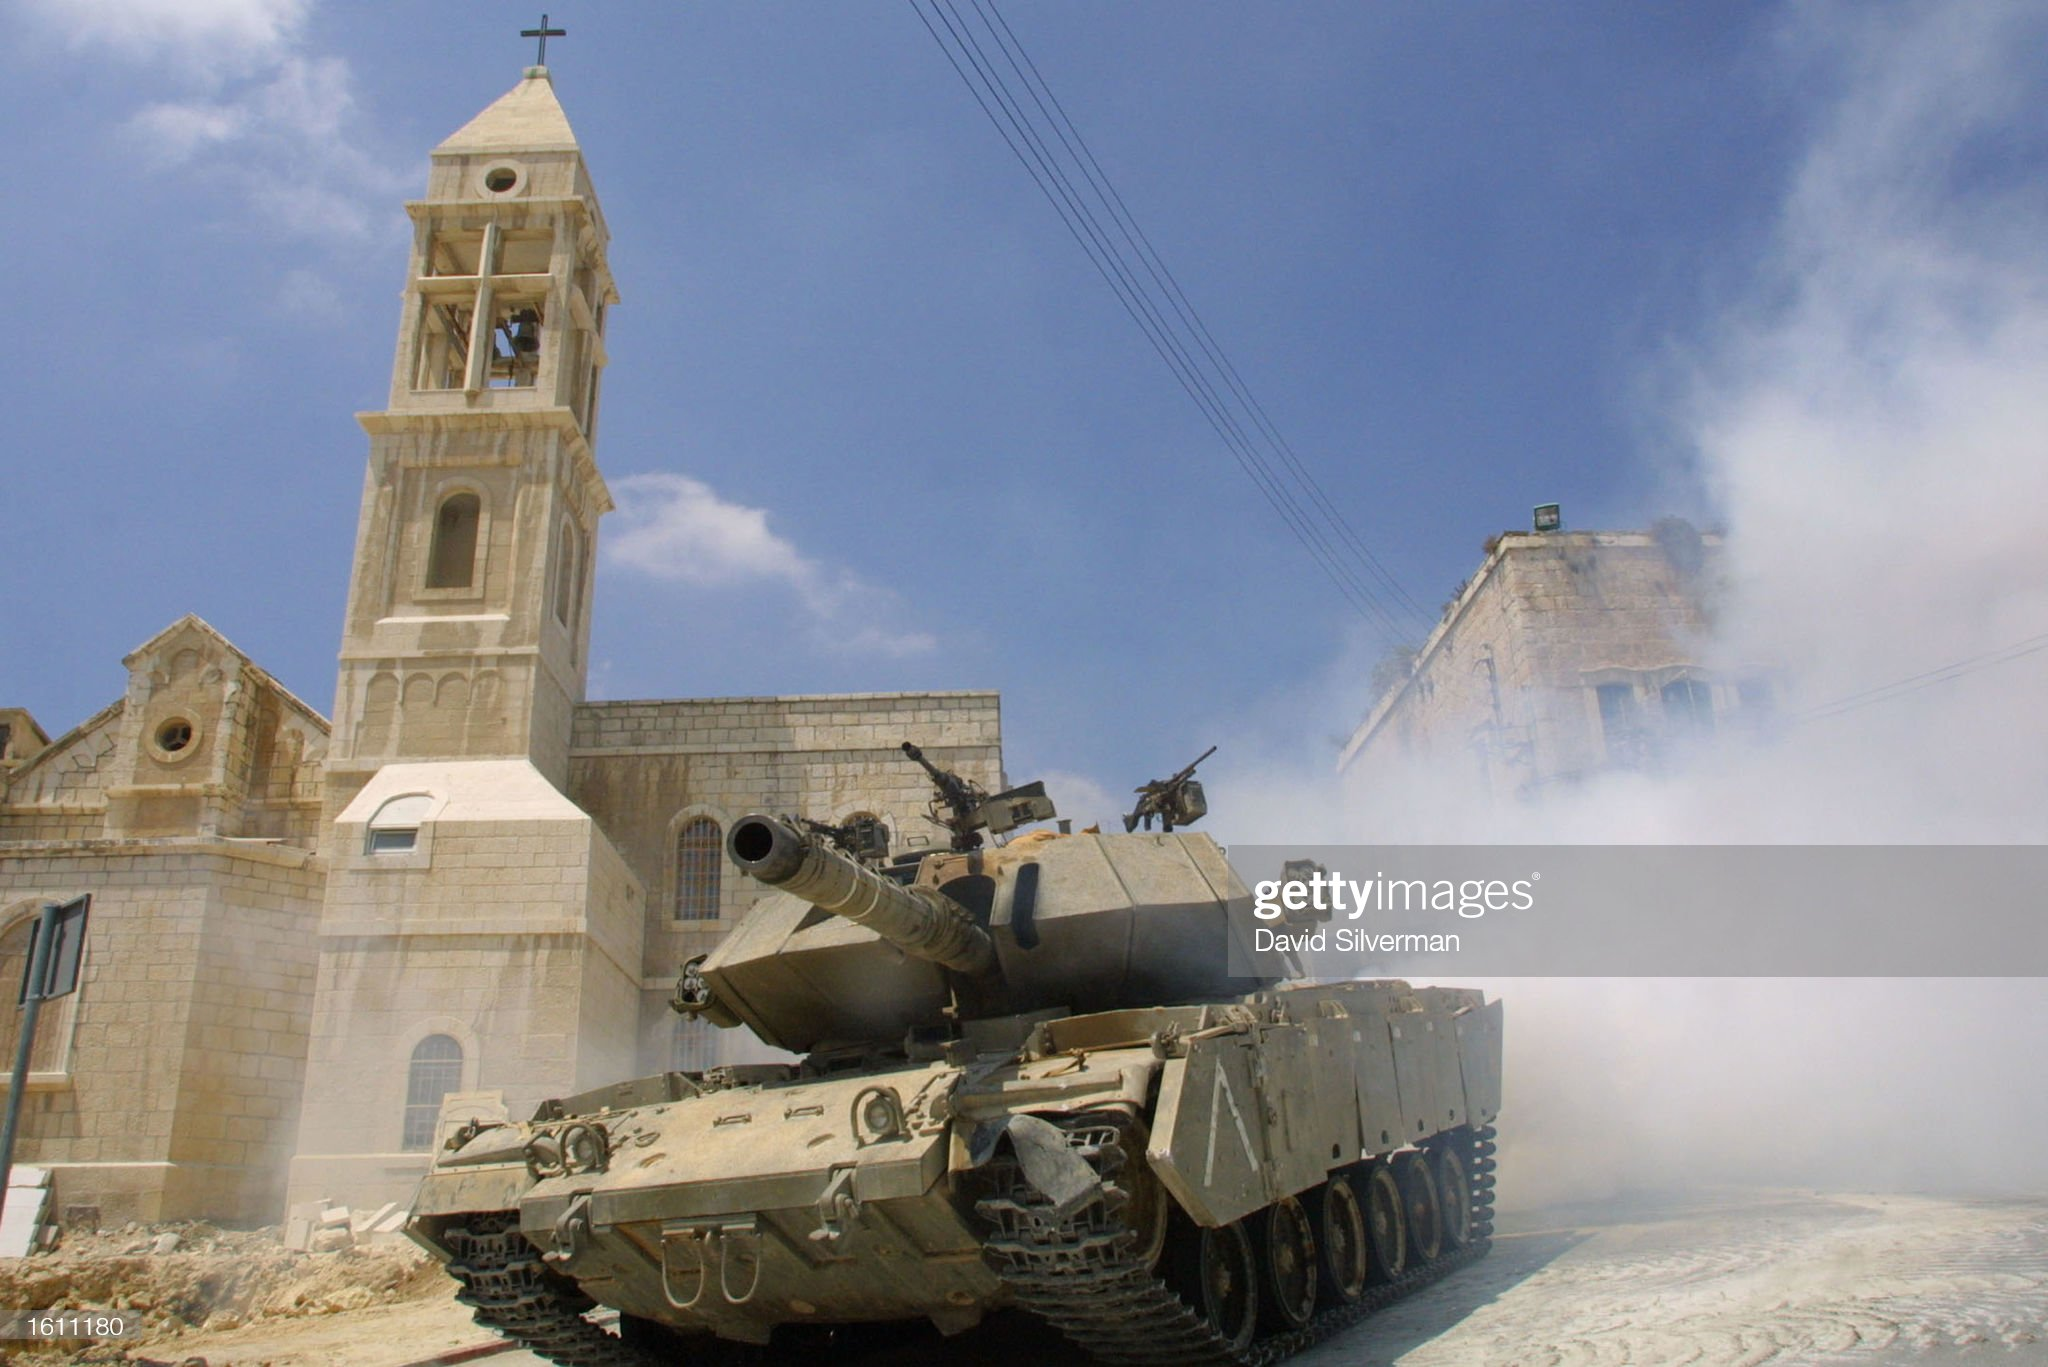 https://media.gettyimages.com/photos/an-israeli-tank-gives-itself-a-smoke-screen-as-it-changes-position-a-picture-id1611180?s=2048x2048